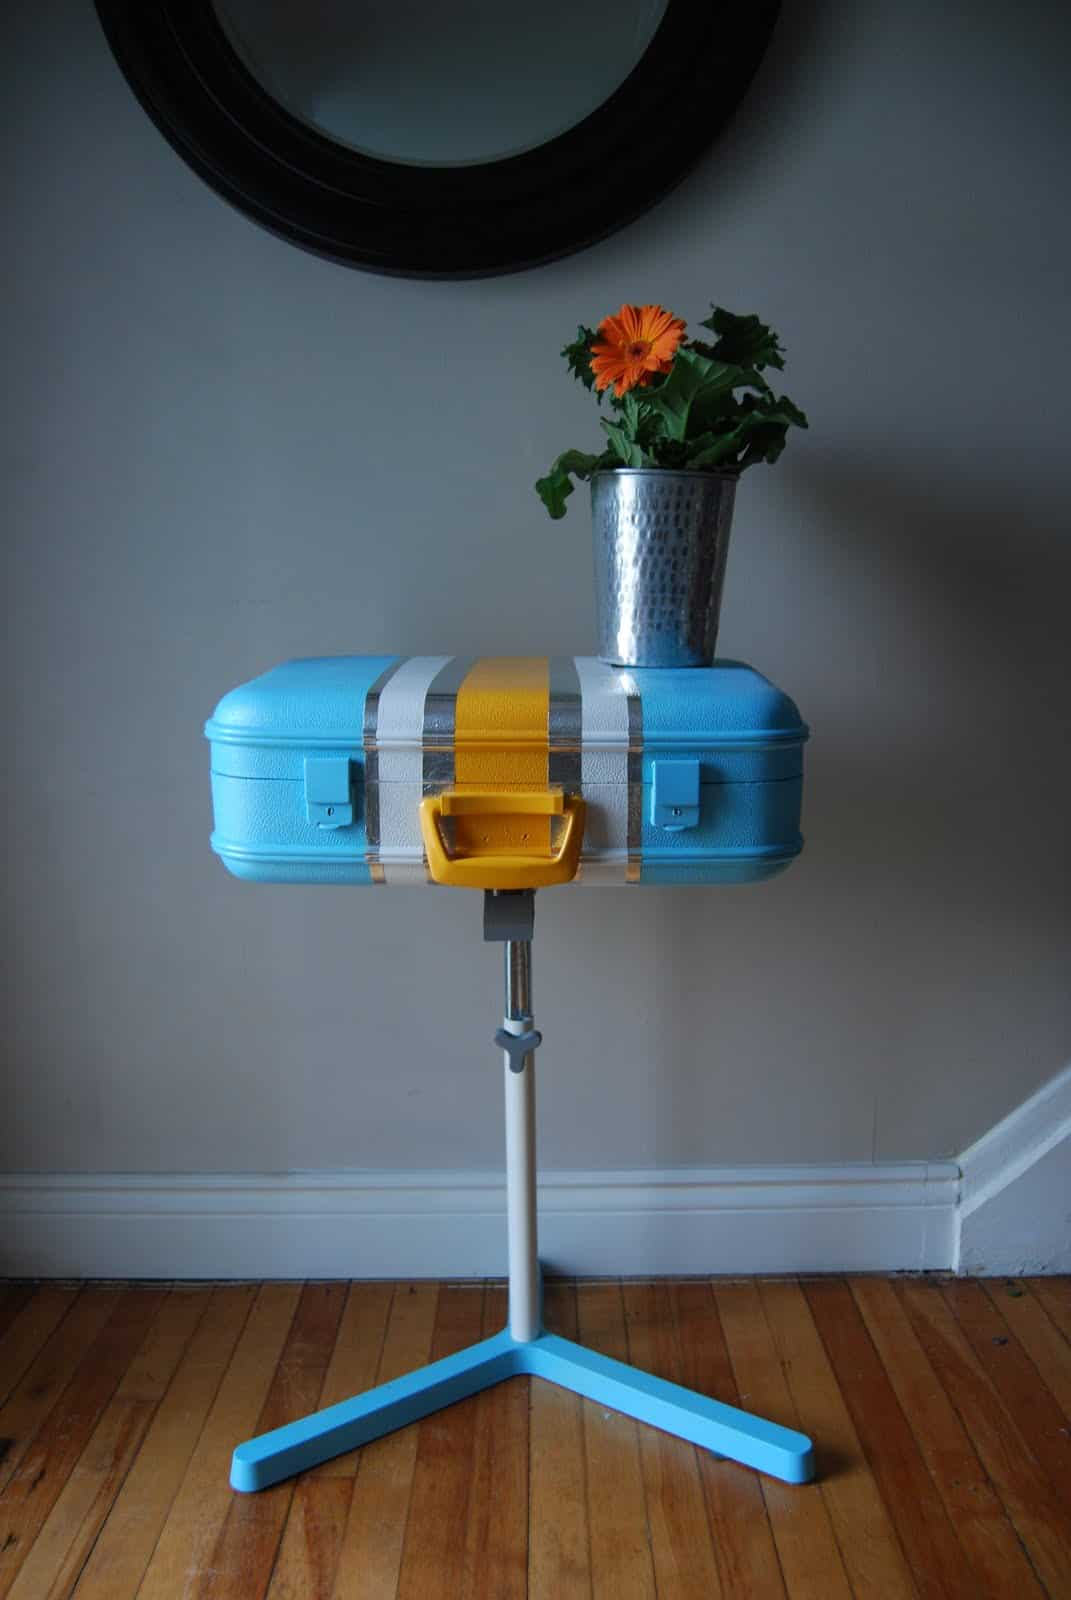 25 Beautifully Creative Ways to Recycle Vintage Suitcases at Home homesthetics decor (23)